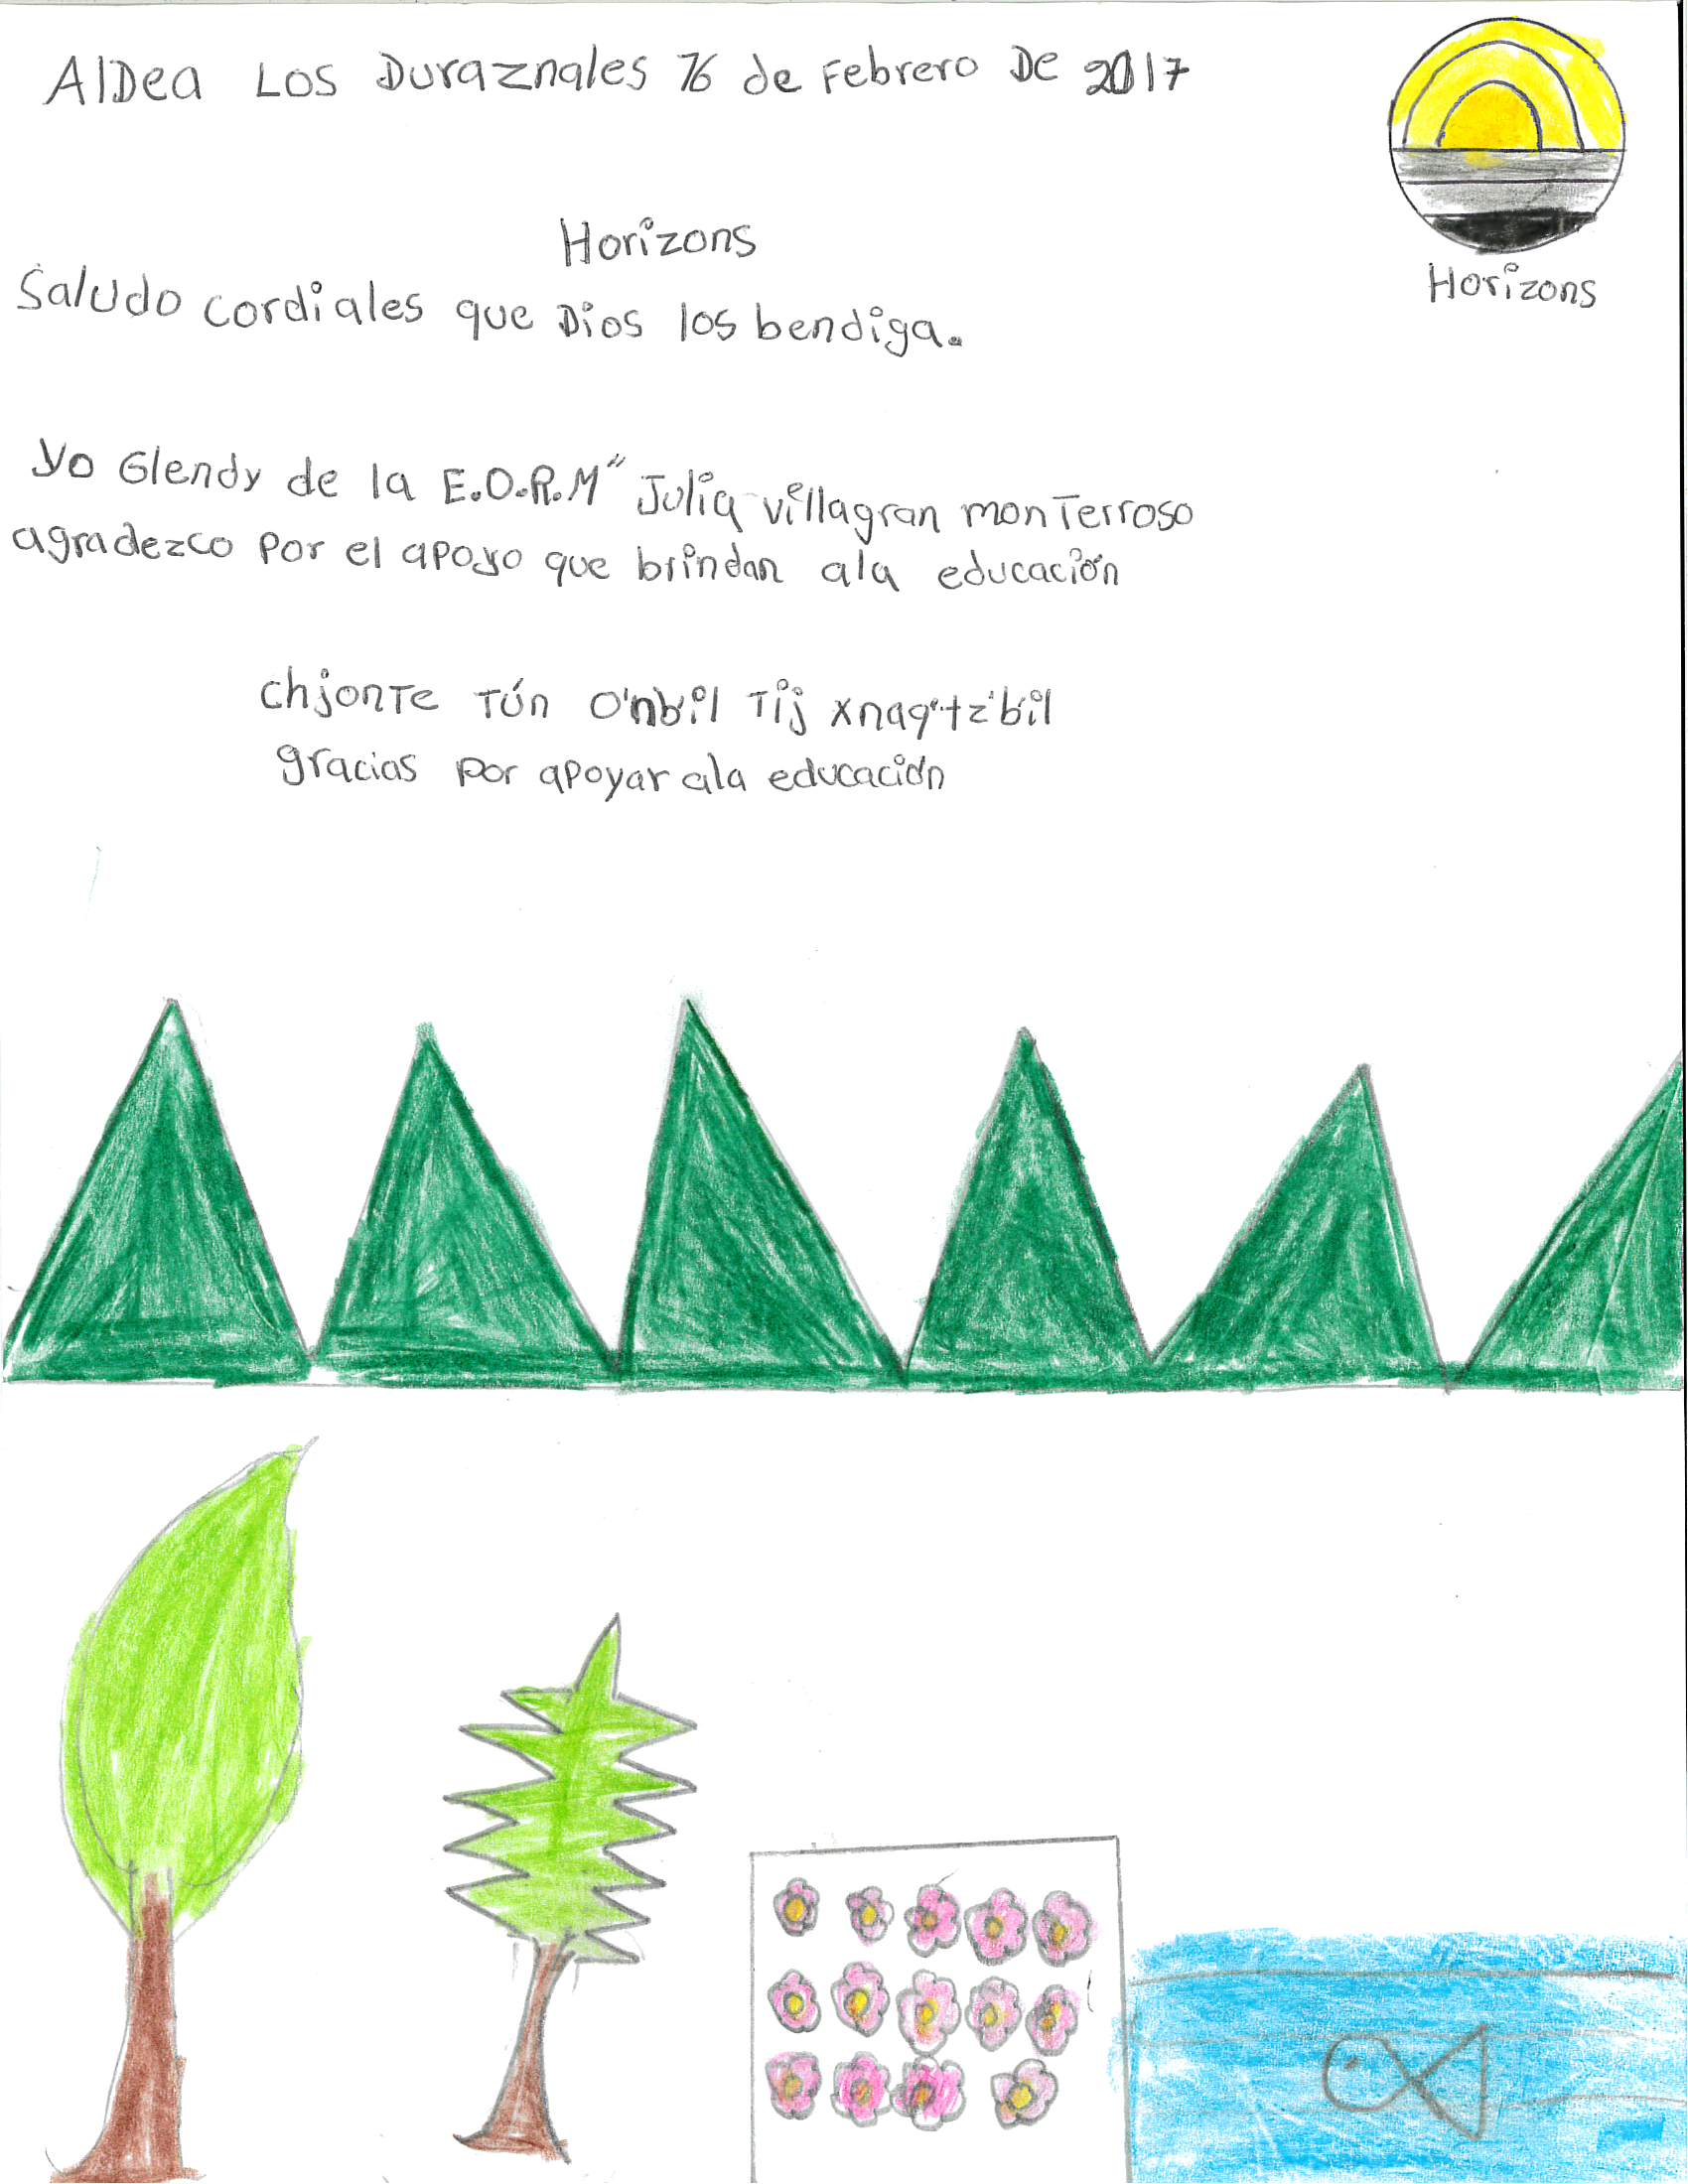 Glendy was one of 24 kids who said thank you to Horizons with a colourful drawing depicting village life.